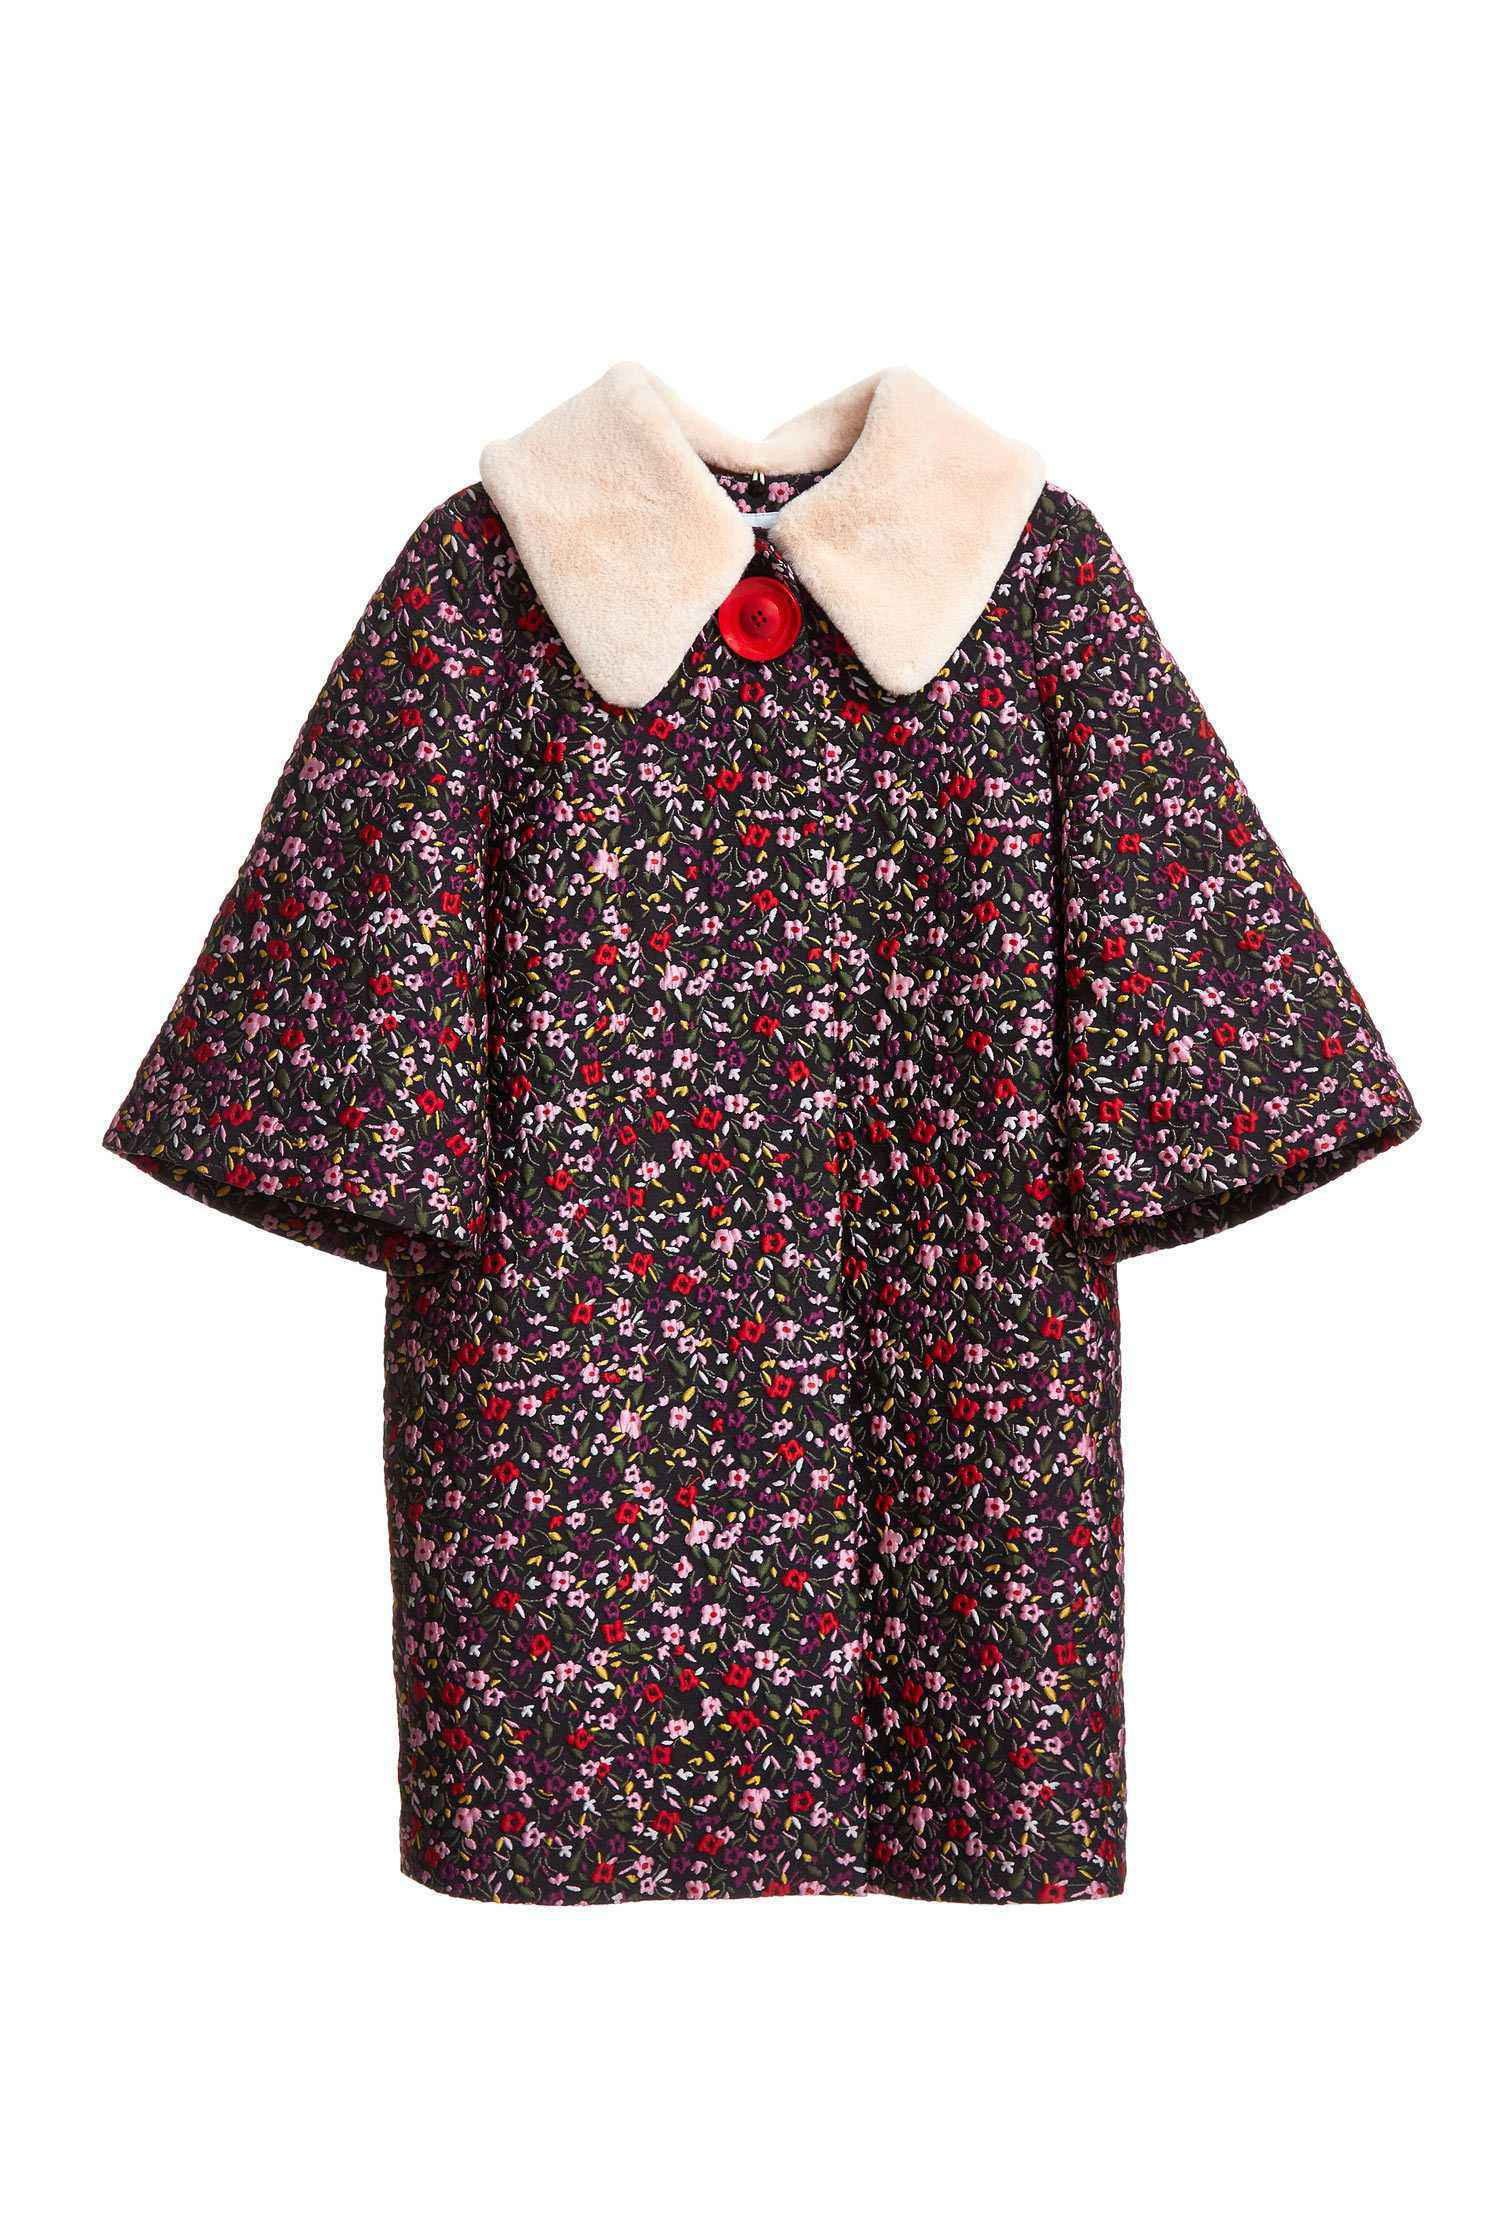 Retro floral totem elbow-length sleeve outwear jacket